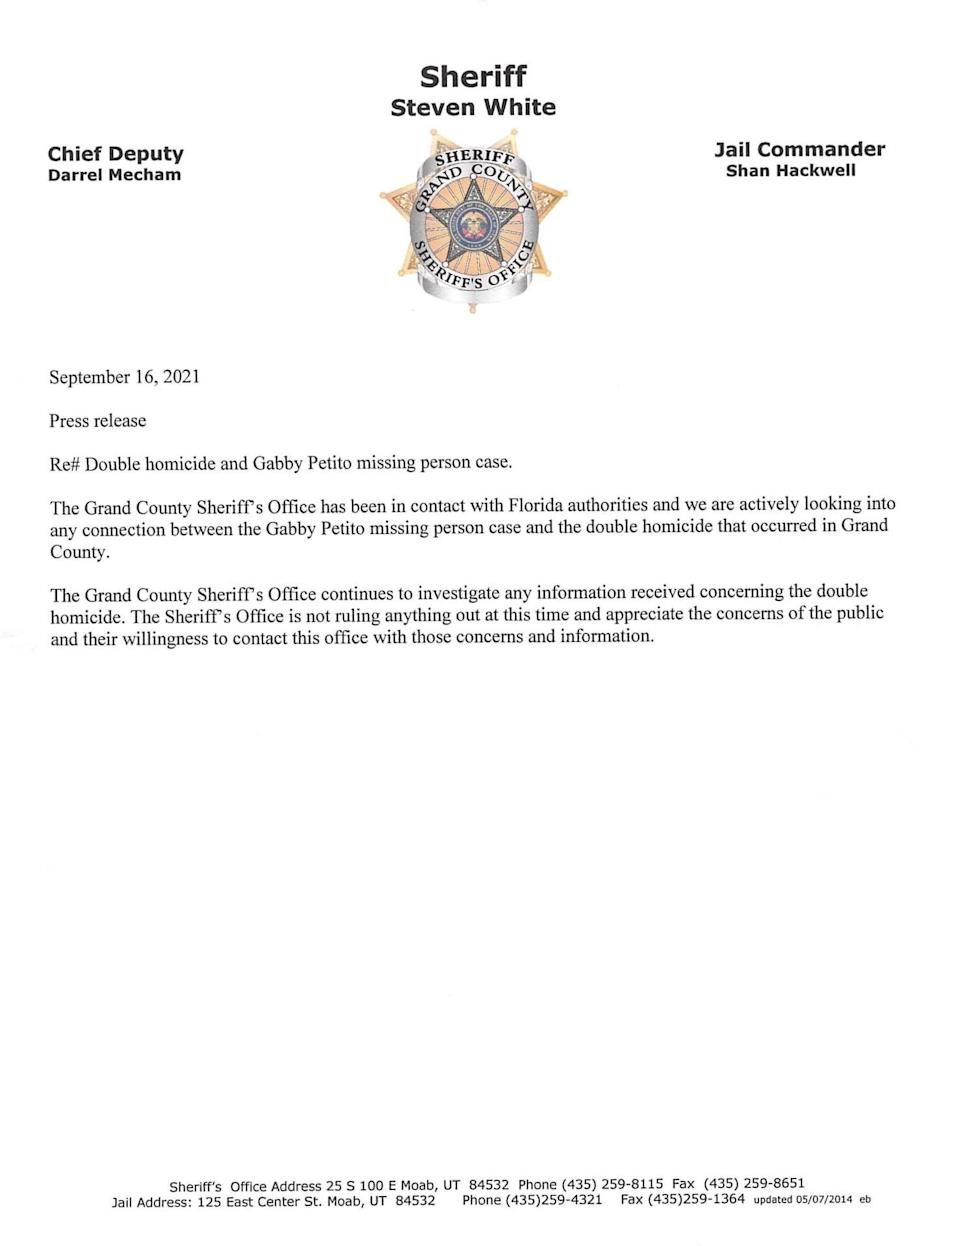 """Police in Grand County, Utah have said in a statement that they're looking for """"any connection"""" between the disappearance of Gabby Petito and the fatal shooting of Kylen Schulte and Crystal Turner (Grand County Sheriff's Office)"""